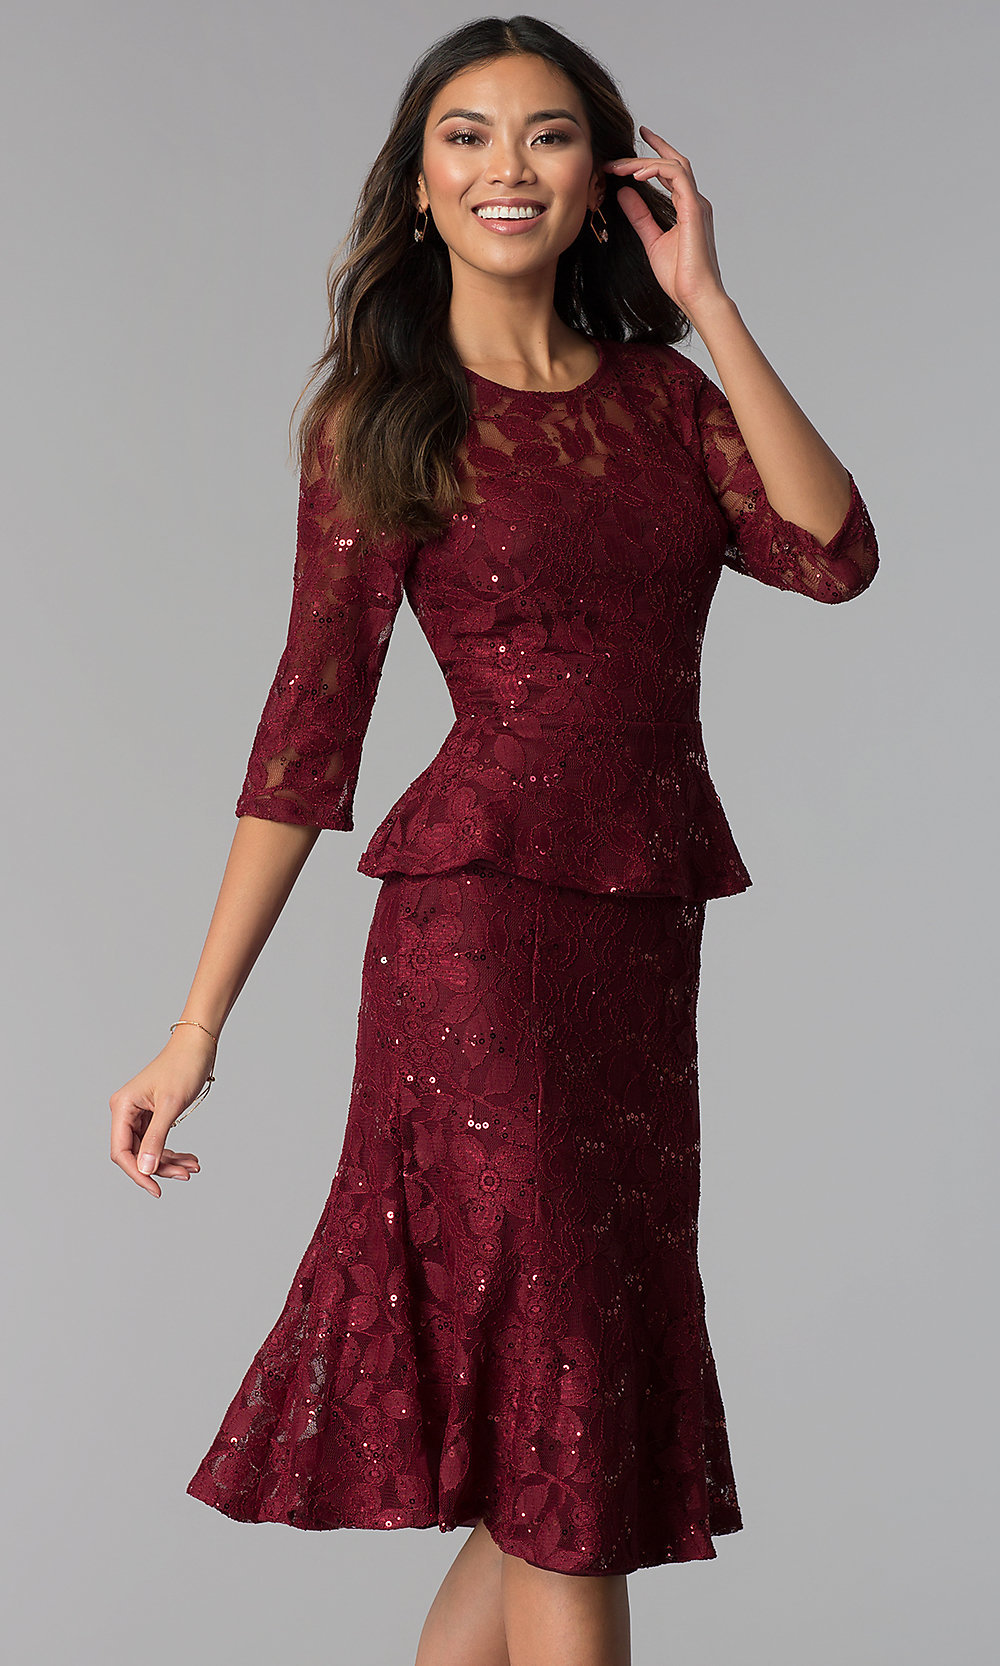 c74157adf6 Lace MOB Two-Piece 3 4-Sleeve Party Dress - PromGirl